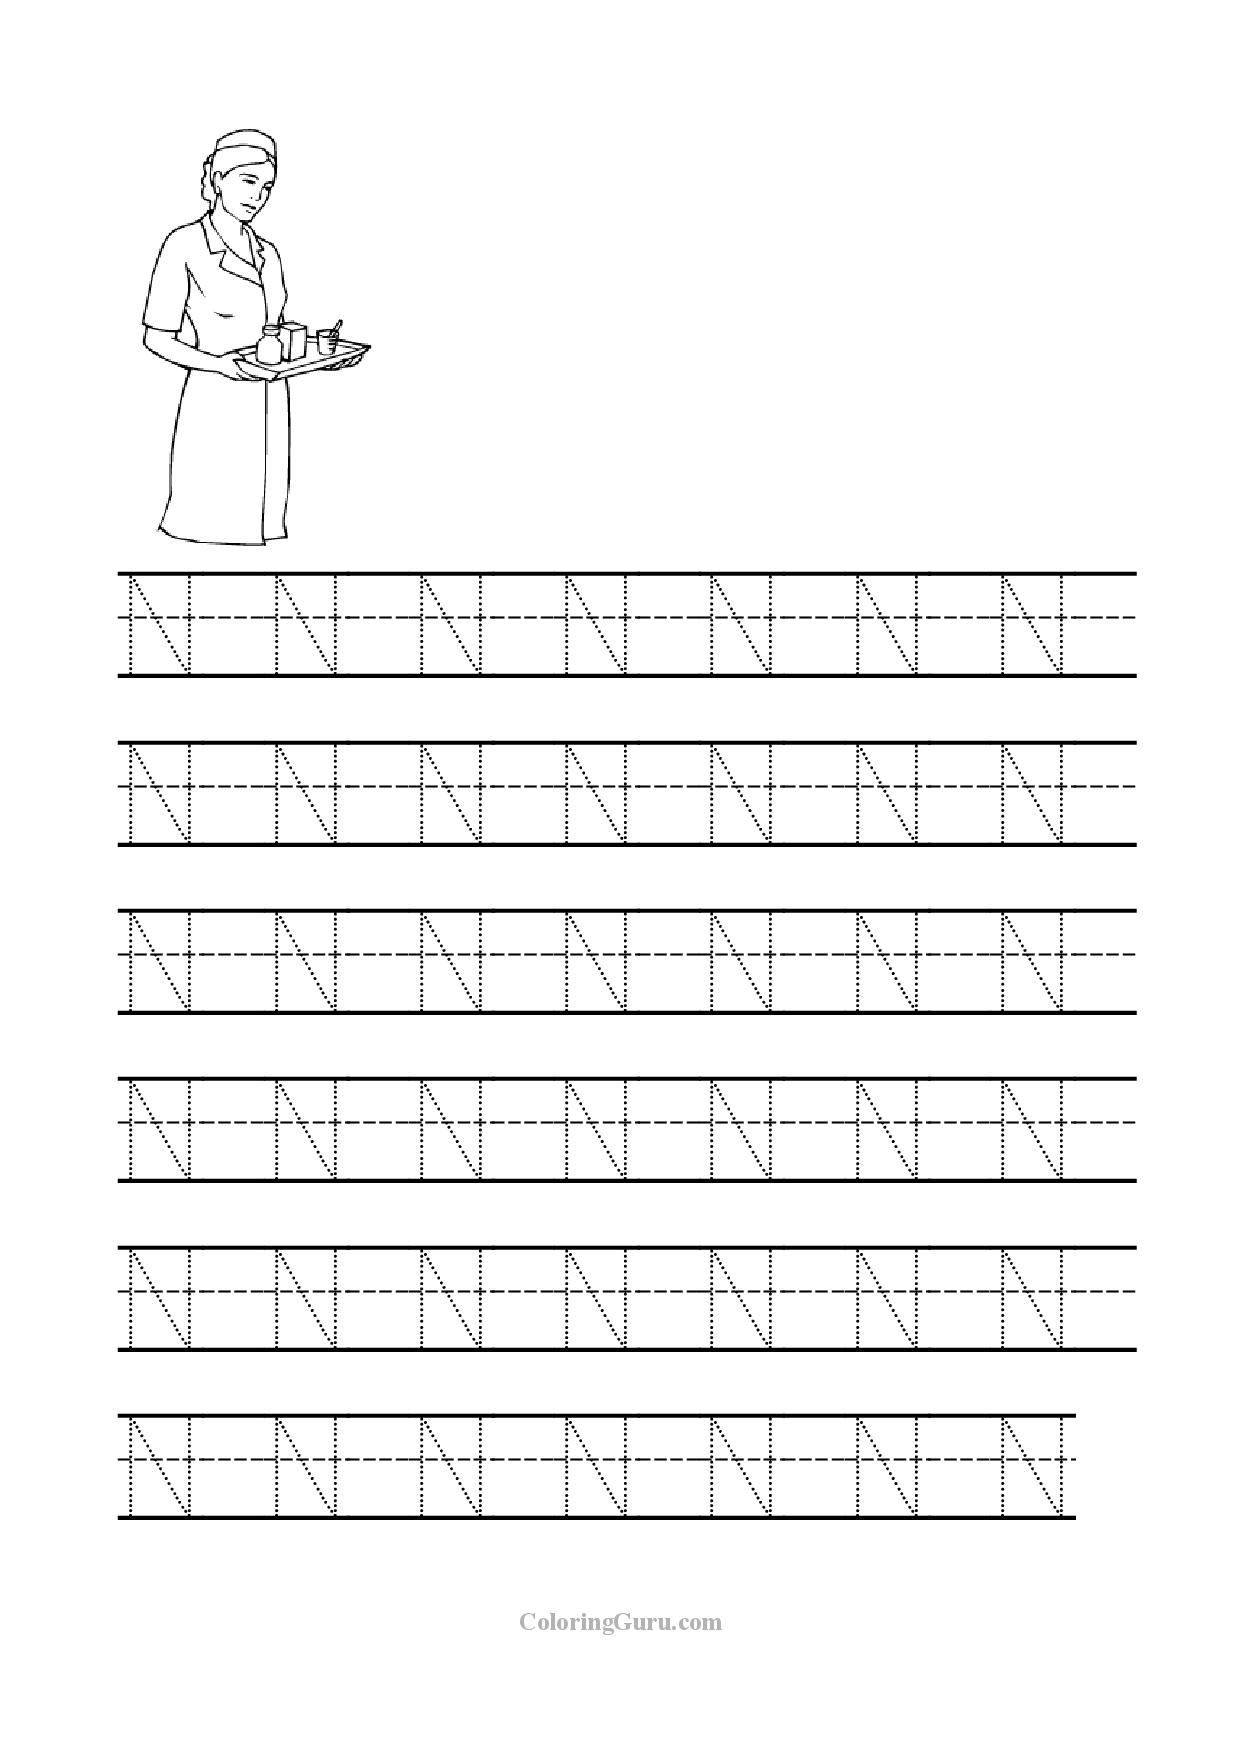 Letter N Worksheets for Preschool Free Printable Tracing Letter N Worksheets for Preschool